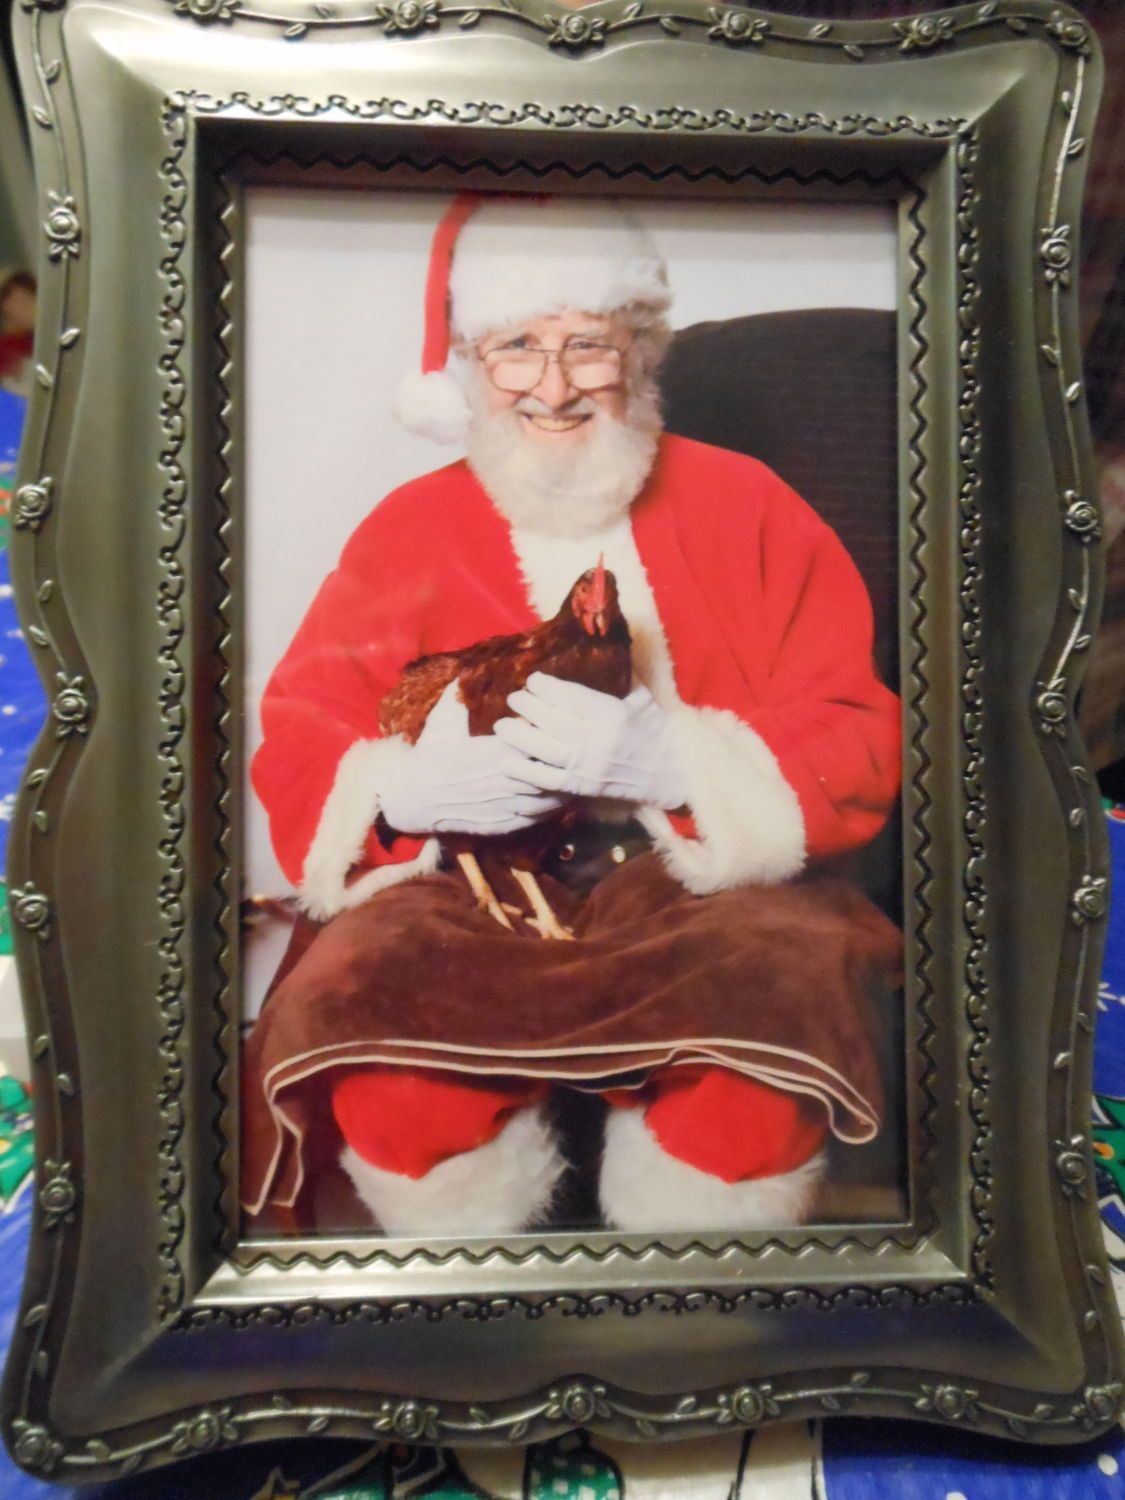 got this from Santa last year it was his first chicken